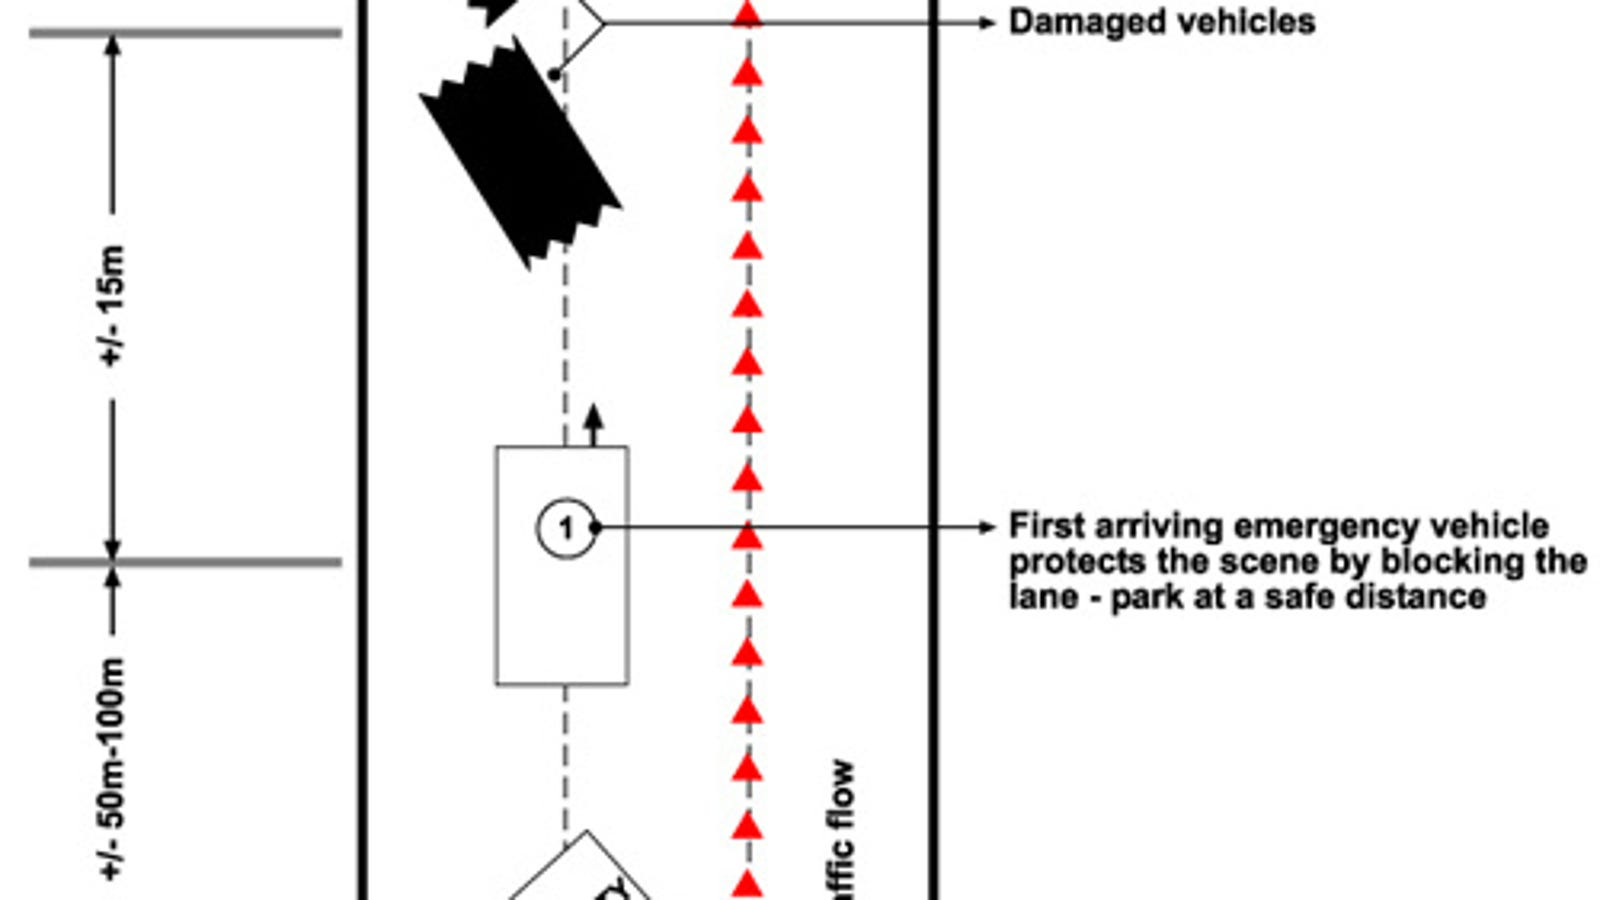 How Police Investigate A Car Crash Scene Safely Fire Engines Diagram Traffic Cone